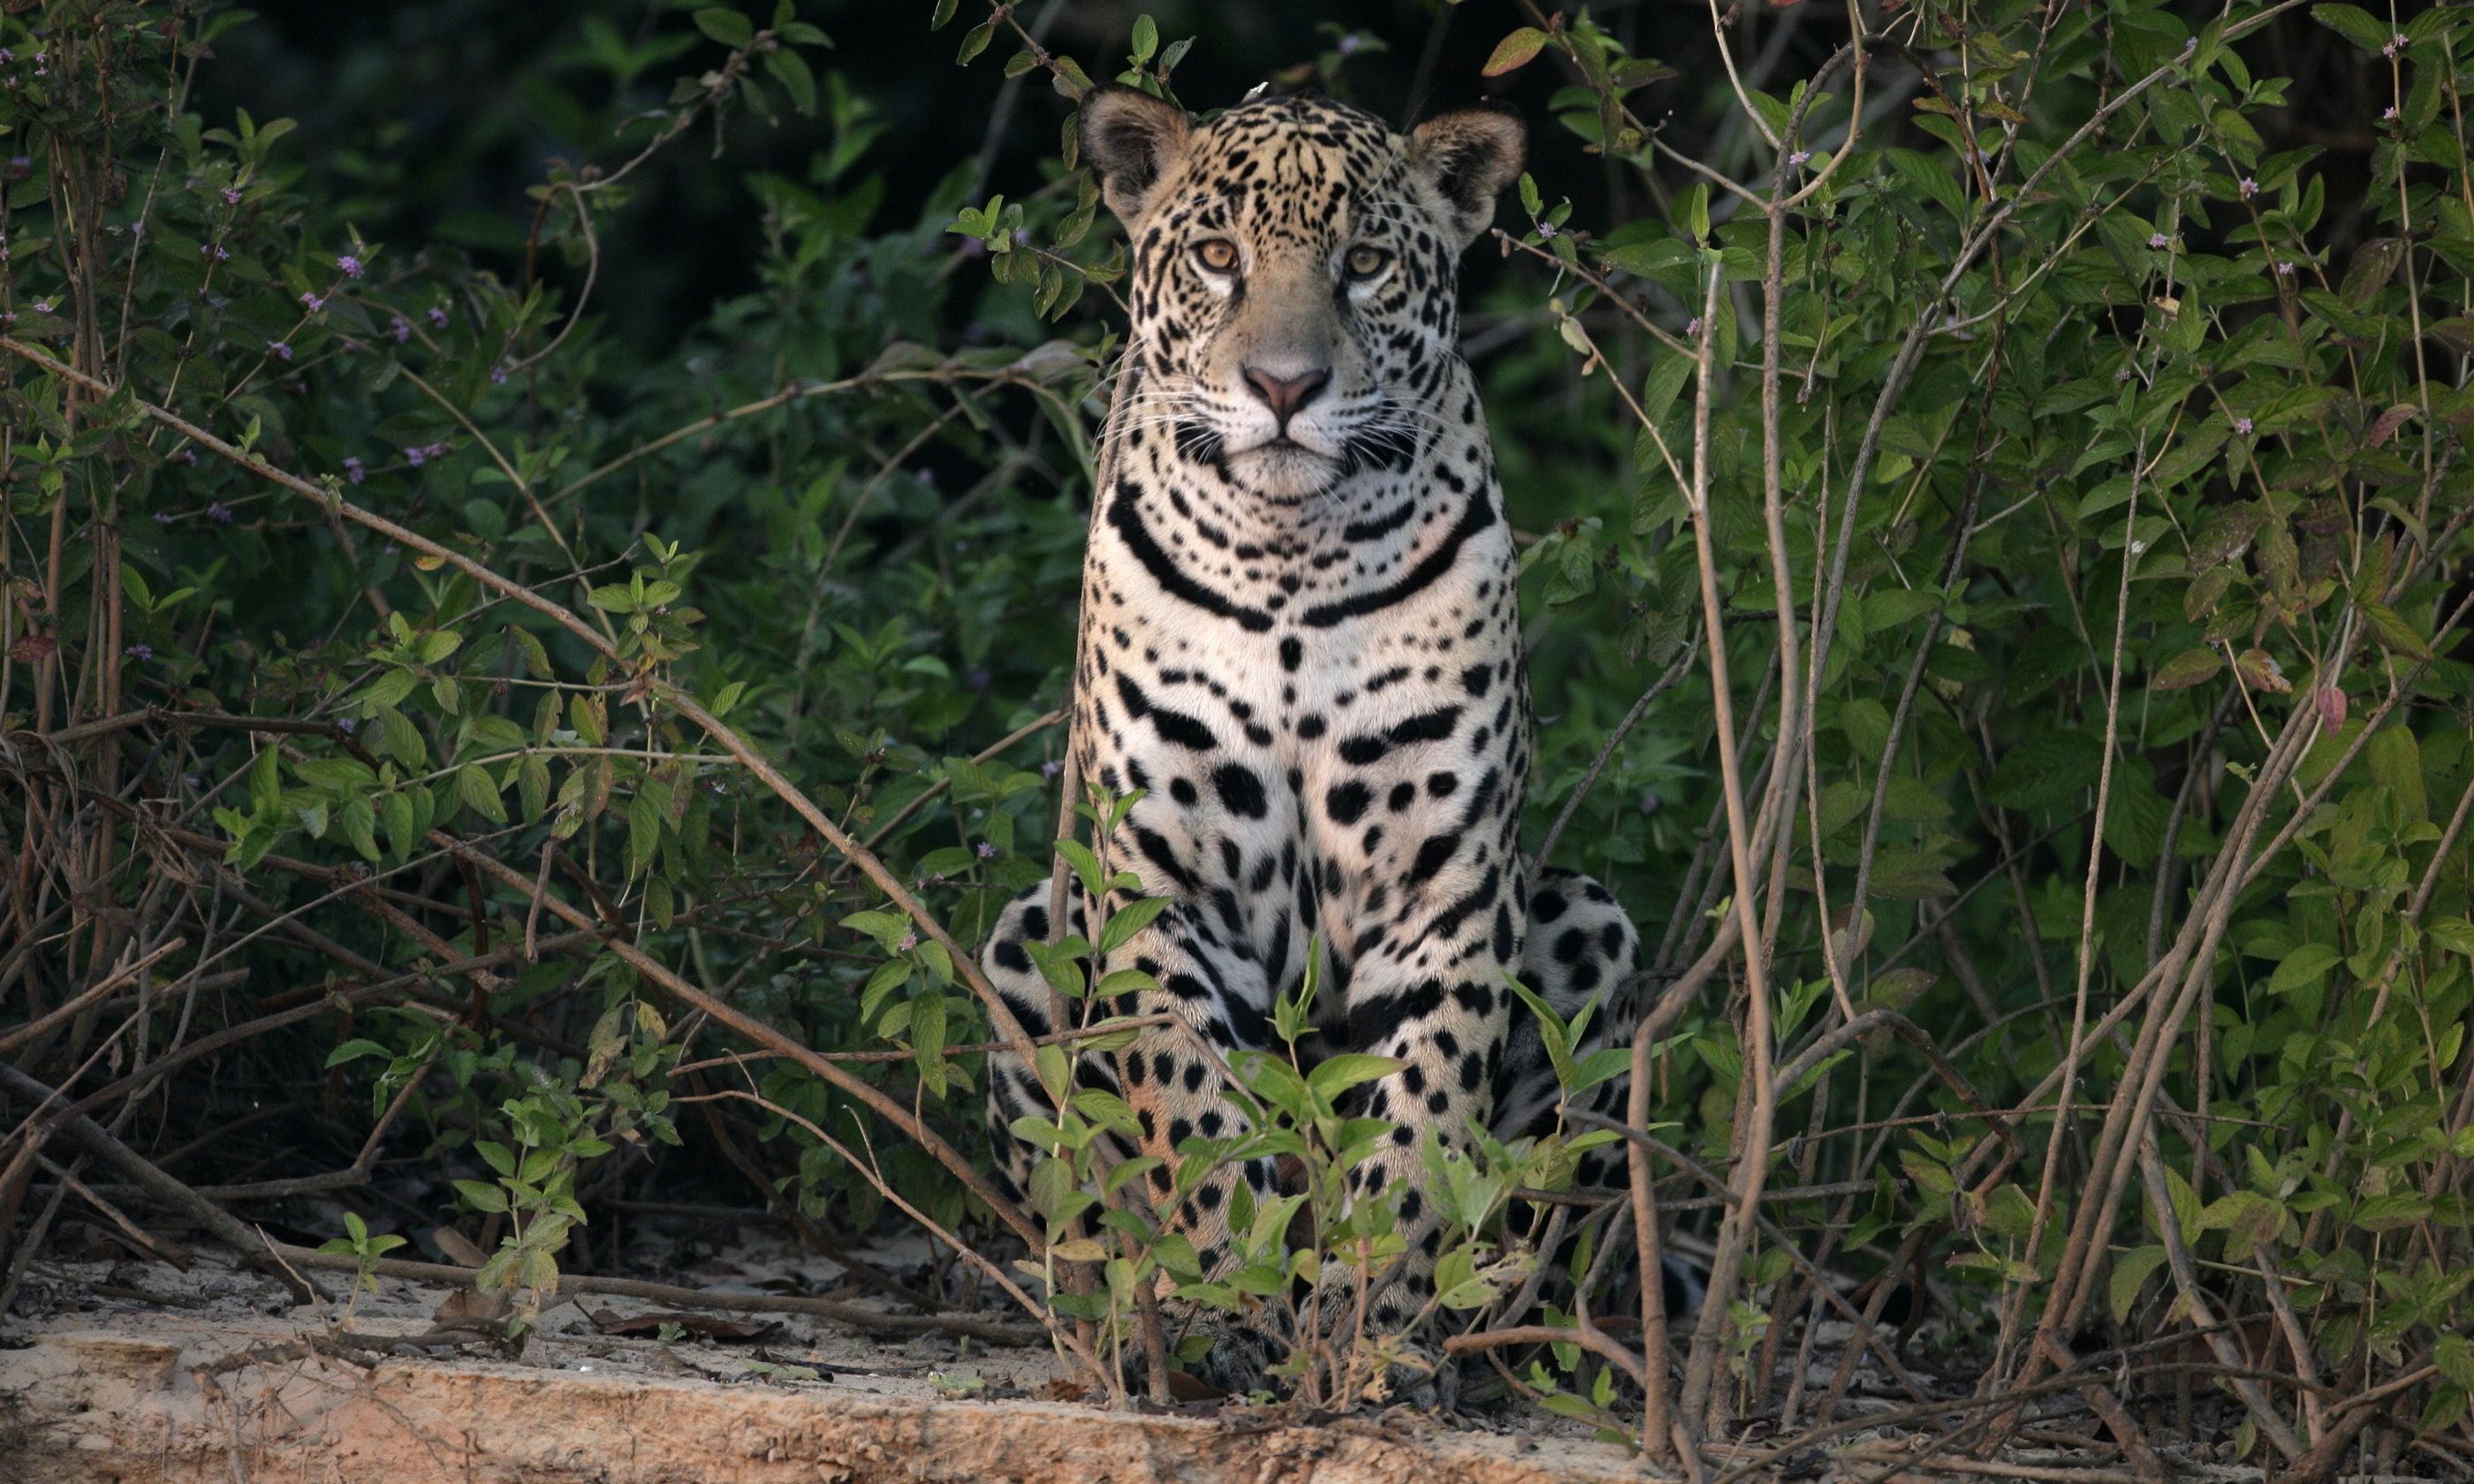 A jaguar in the Pantanal (Dreamstime)